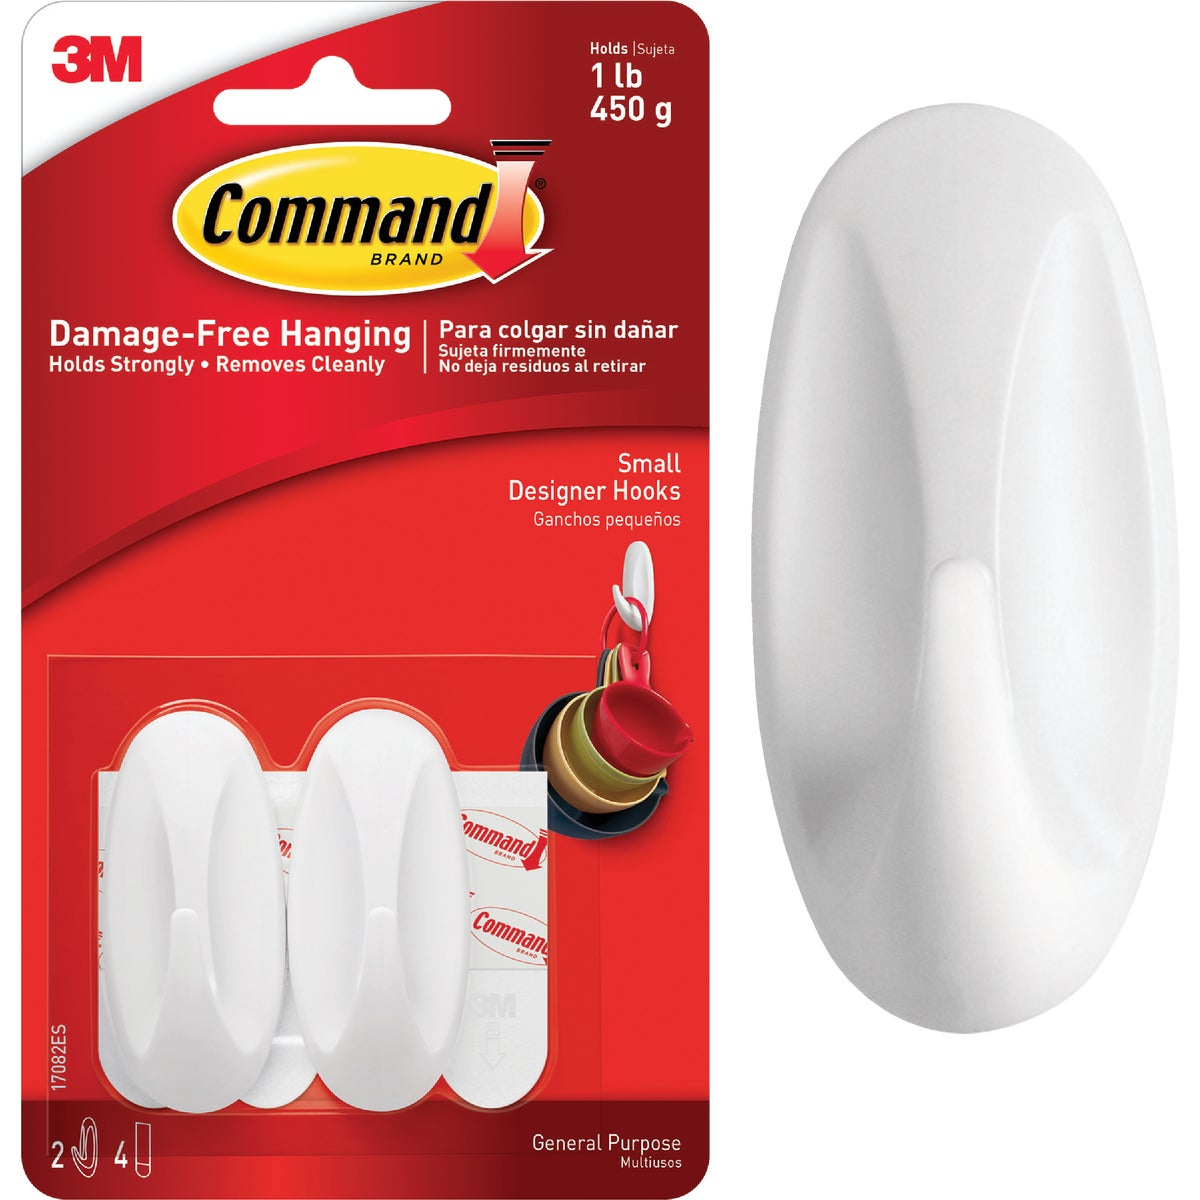 COMMAND WHT DSGN HOOK - 17082 by 3m Co